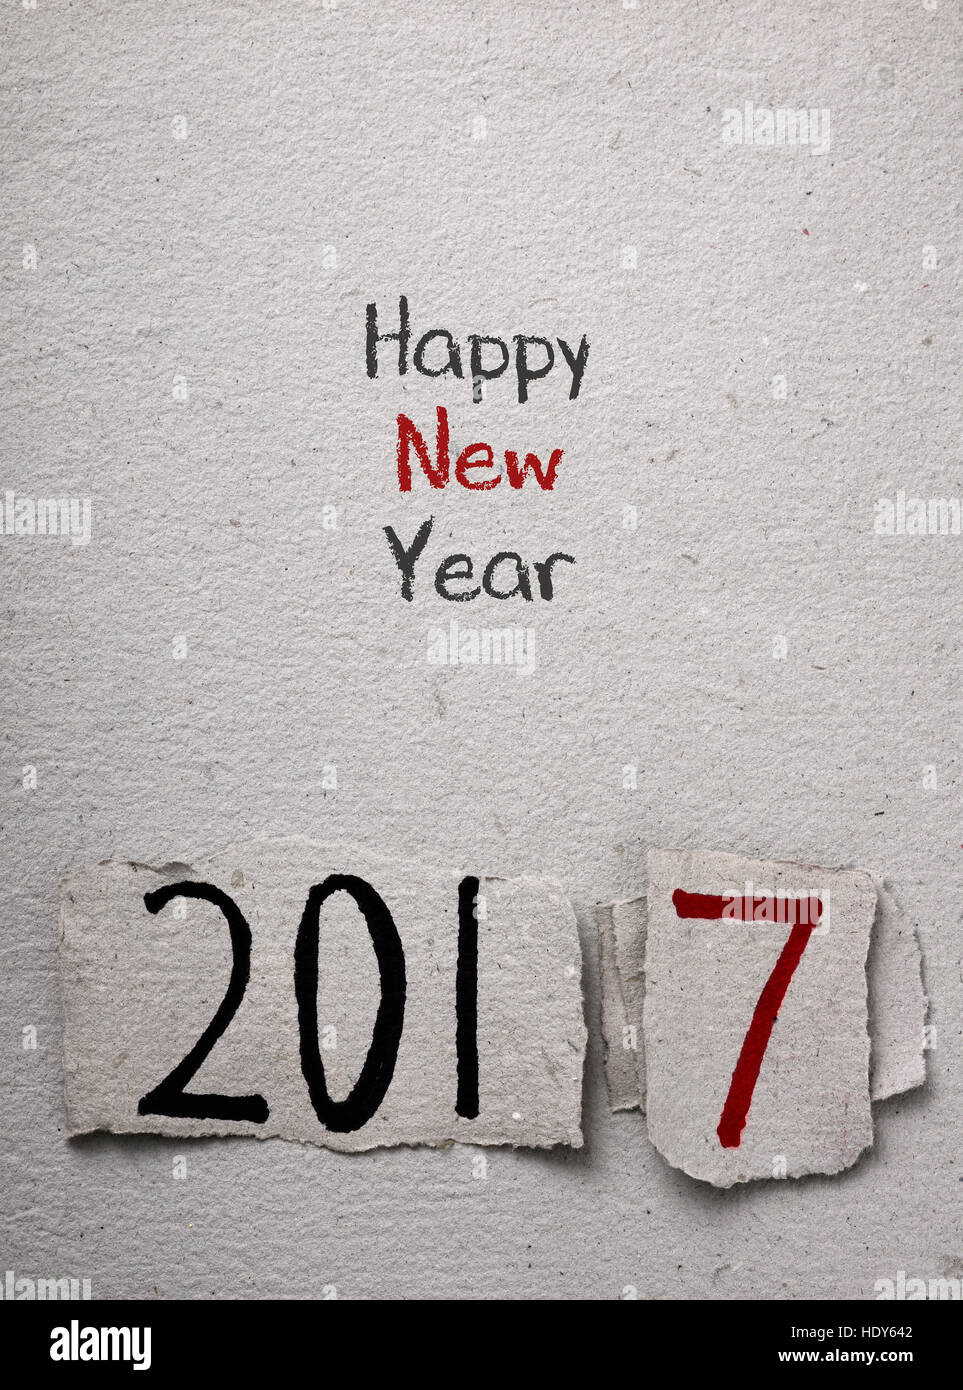 the text happy new year written in a rustic paper and the number 2017, as the new year, handwritten in black and - Stock Image